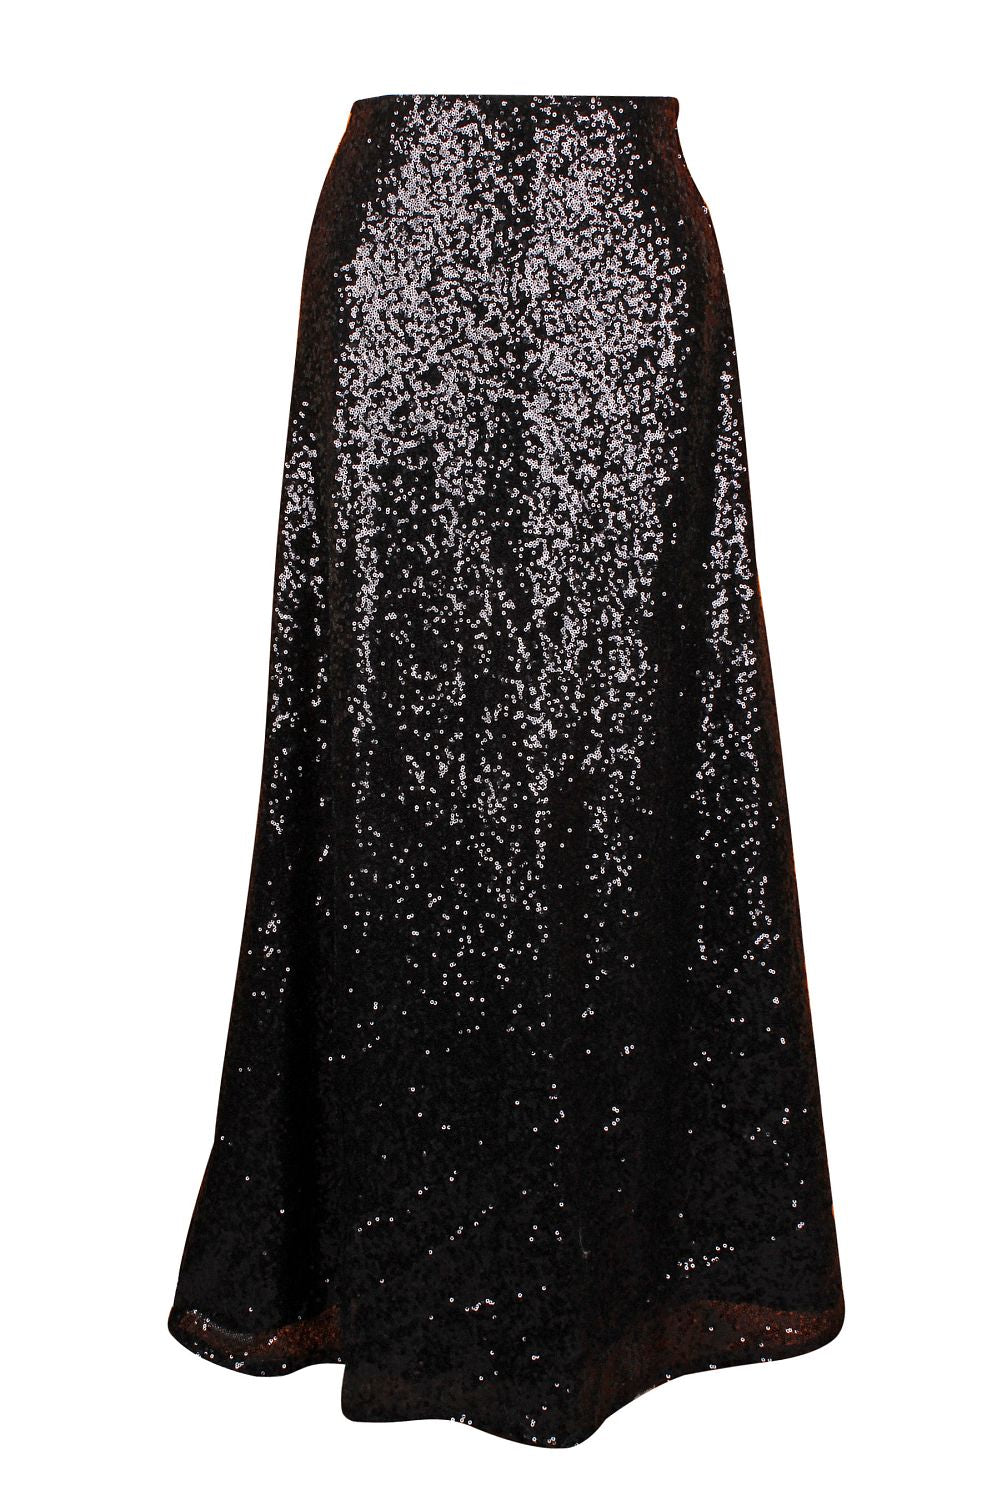 Top Drawer Long Black Sequin Skirt